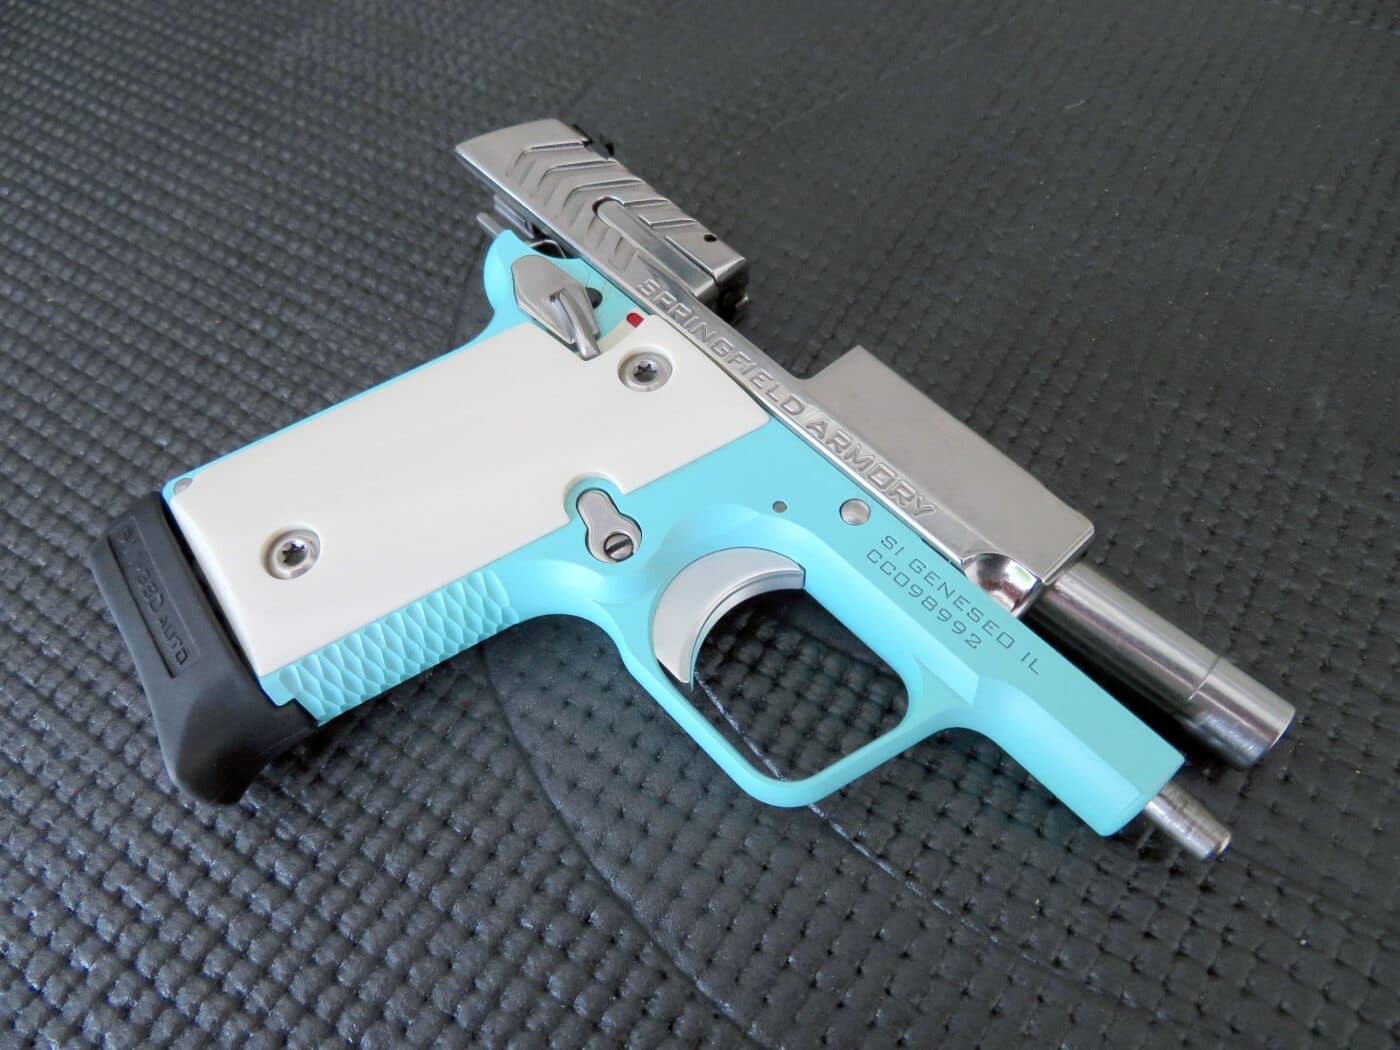 Right side view of the robin egg blue 911 pistol with slide locked back